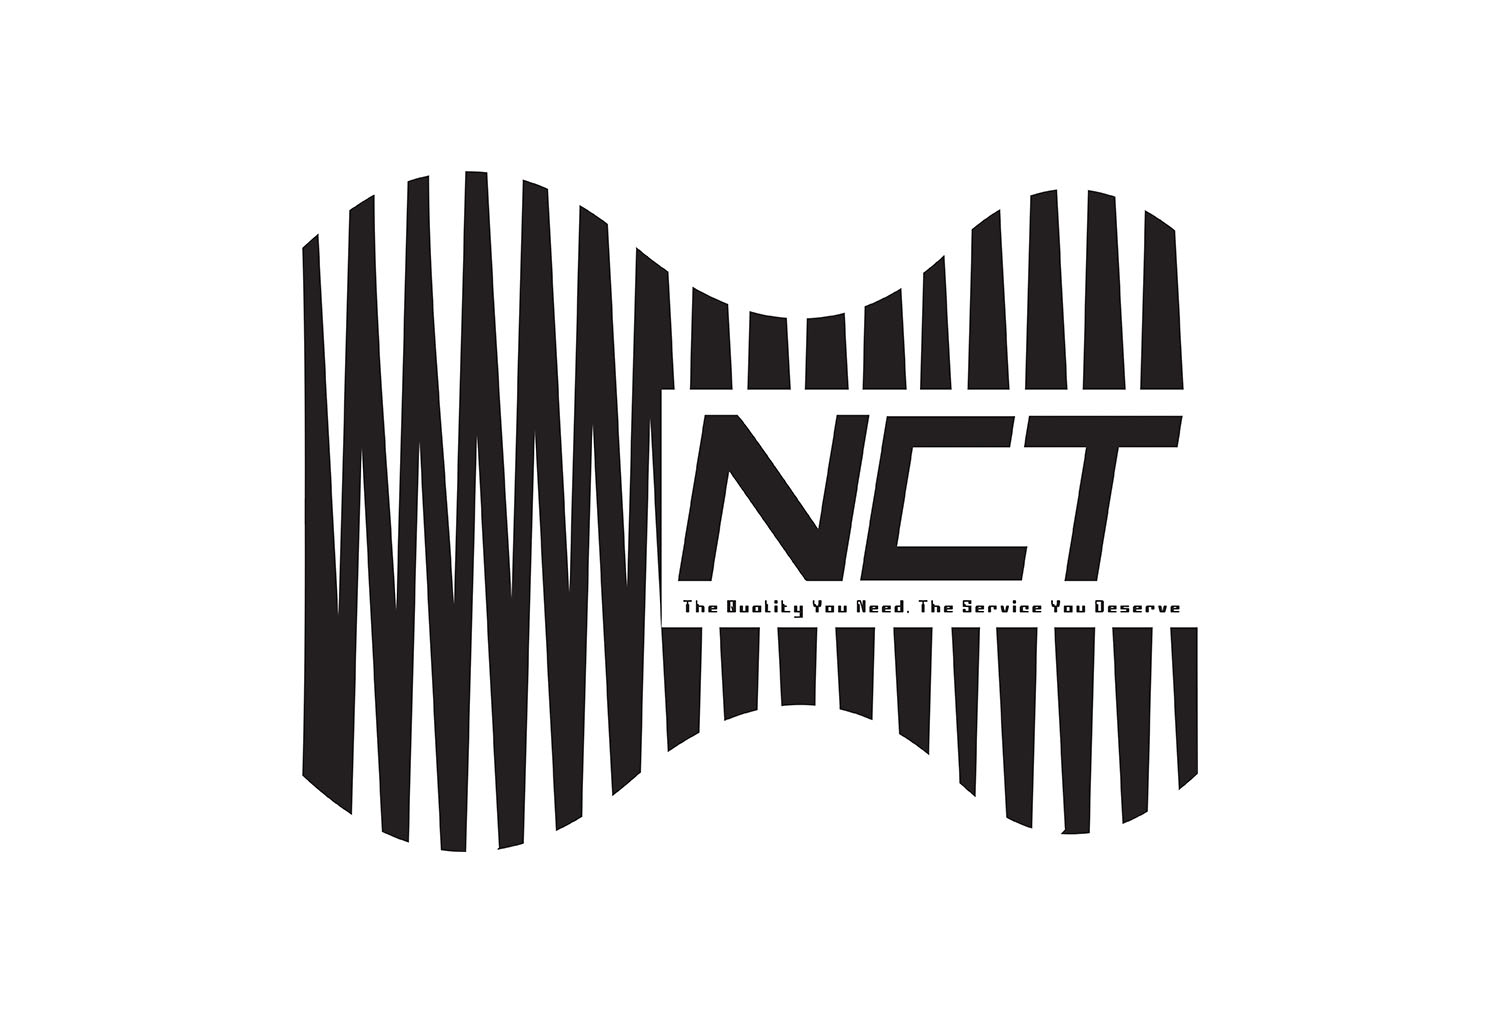 Serious, Professional, Cell Phone Logo Design for NCT (slogan - the